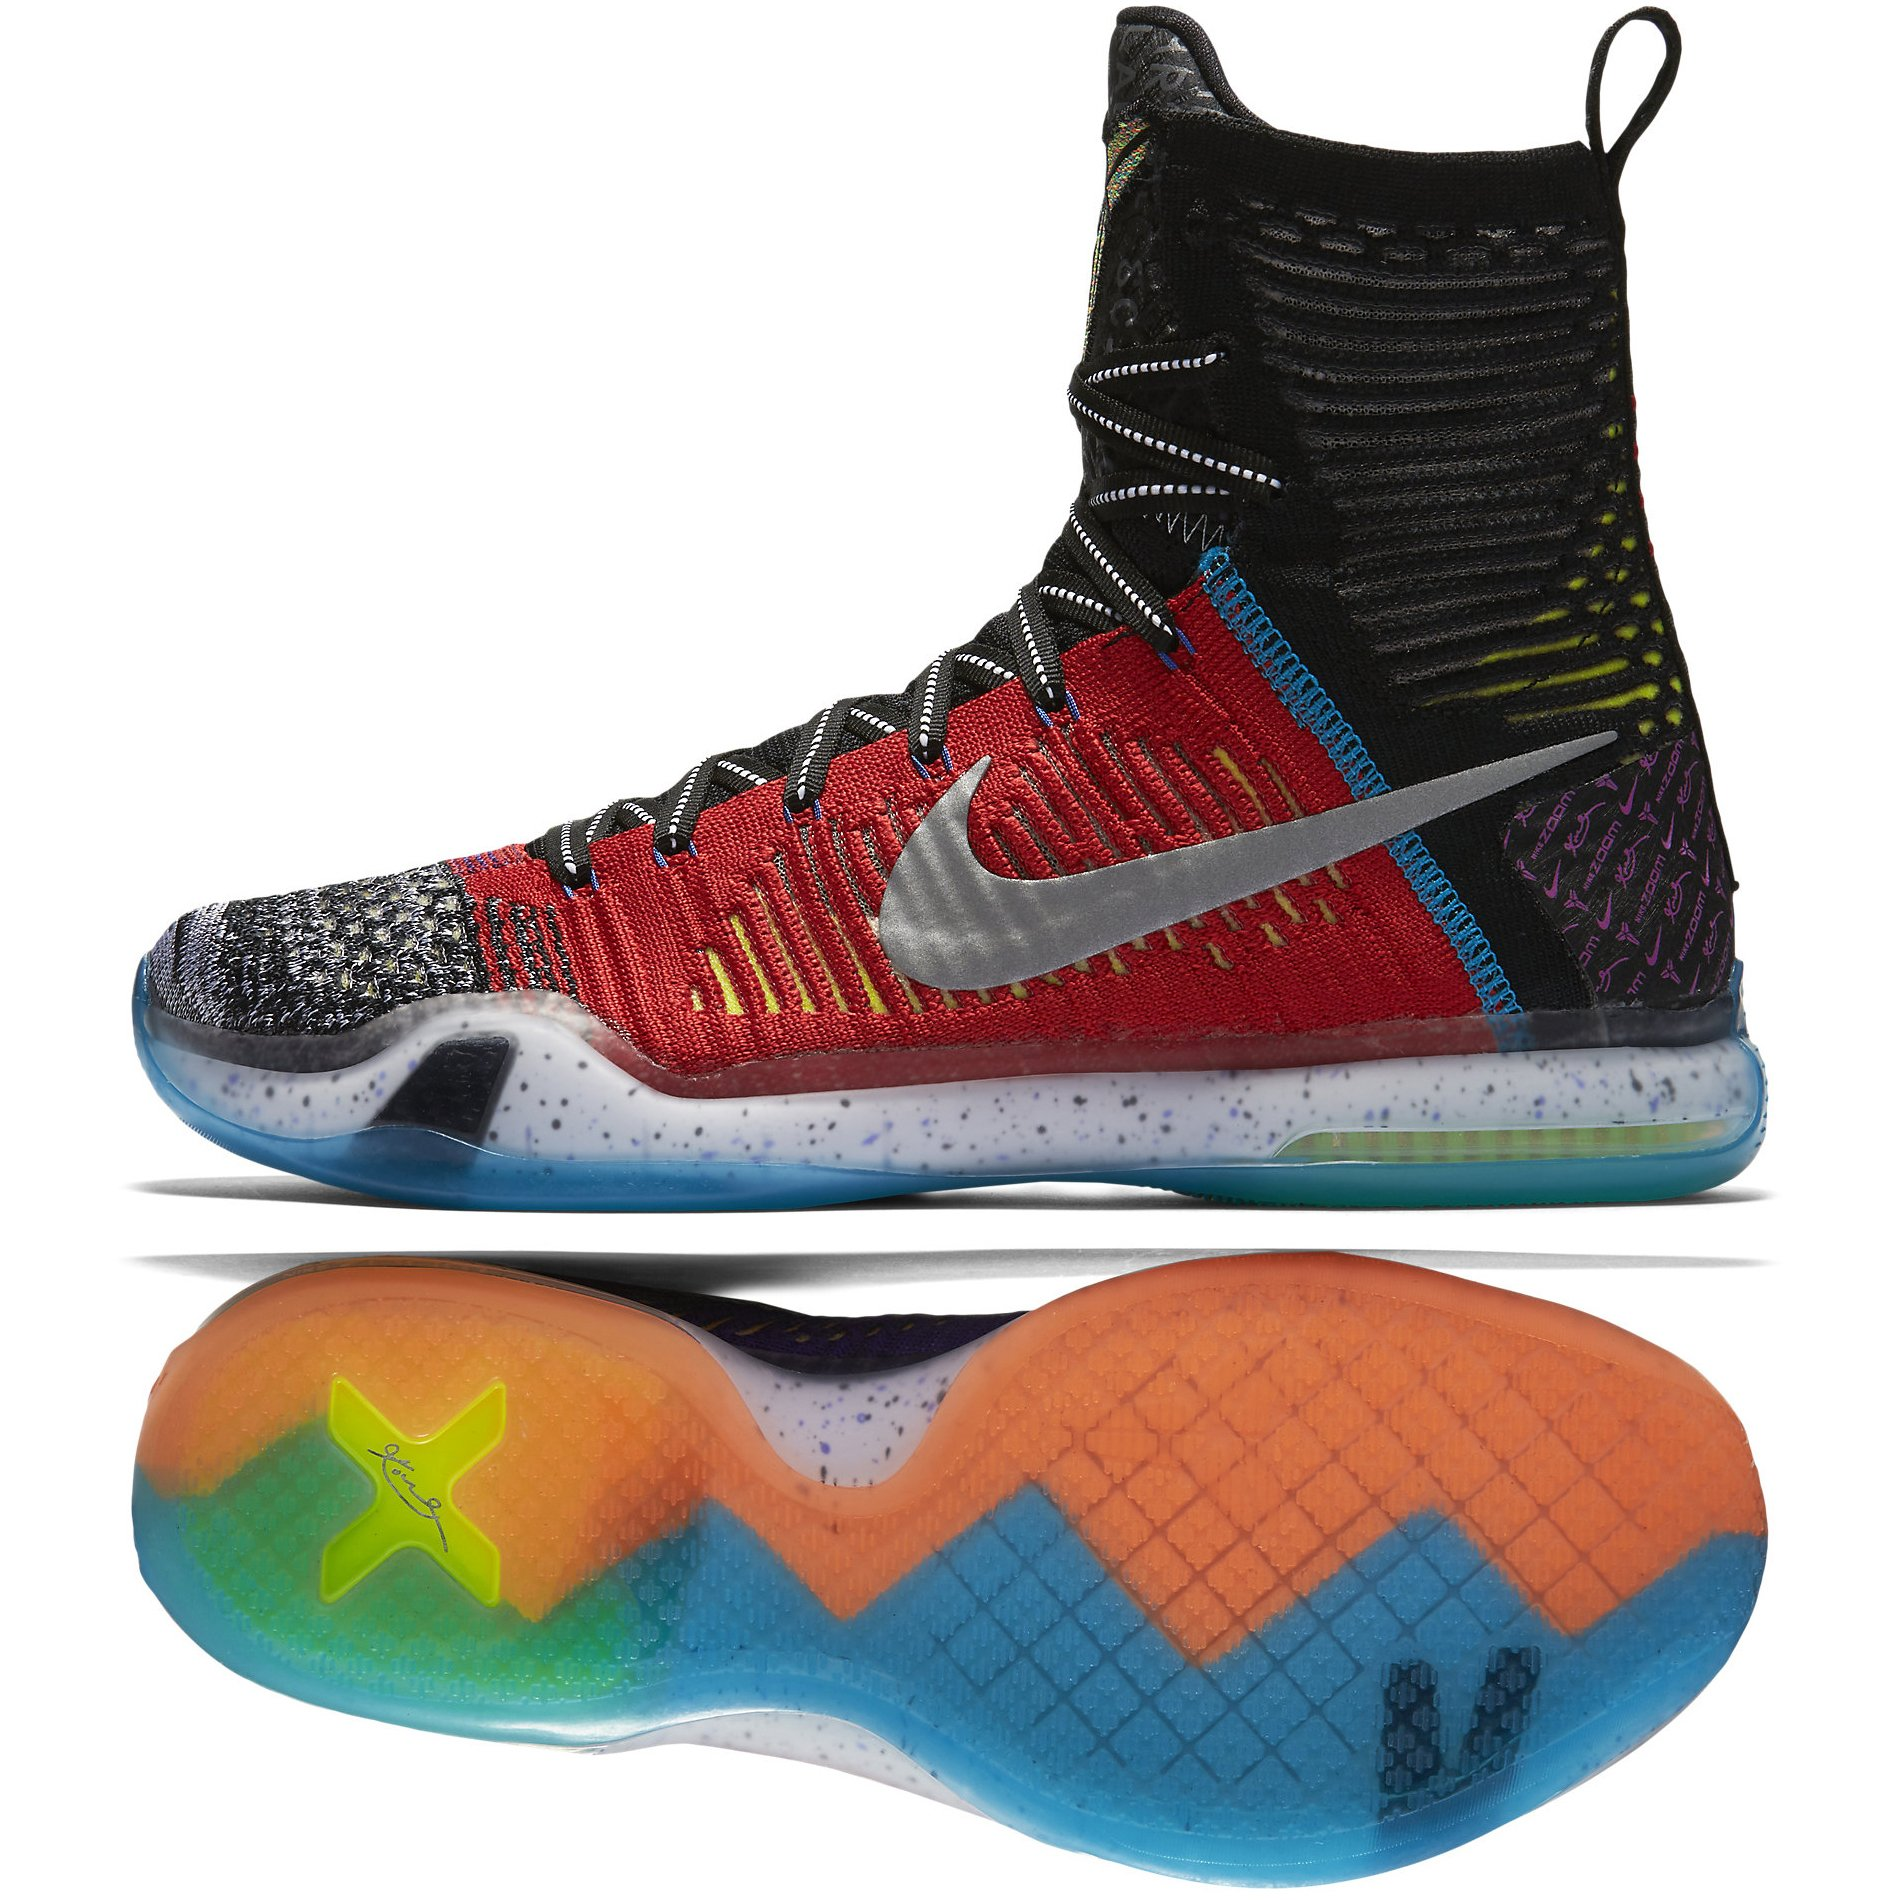 fbf4665415a7 Galleon - Nike Kobe X Elite SE Knit Stocking 815810-900 Multi-Color/Silver  Flyknit Men's Shoes (Size 10.5)